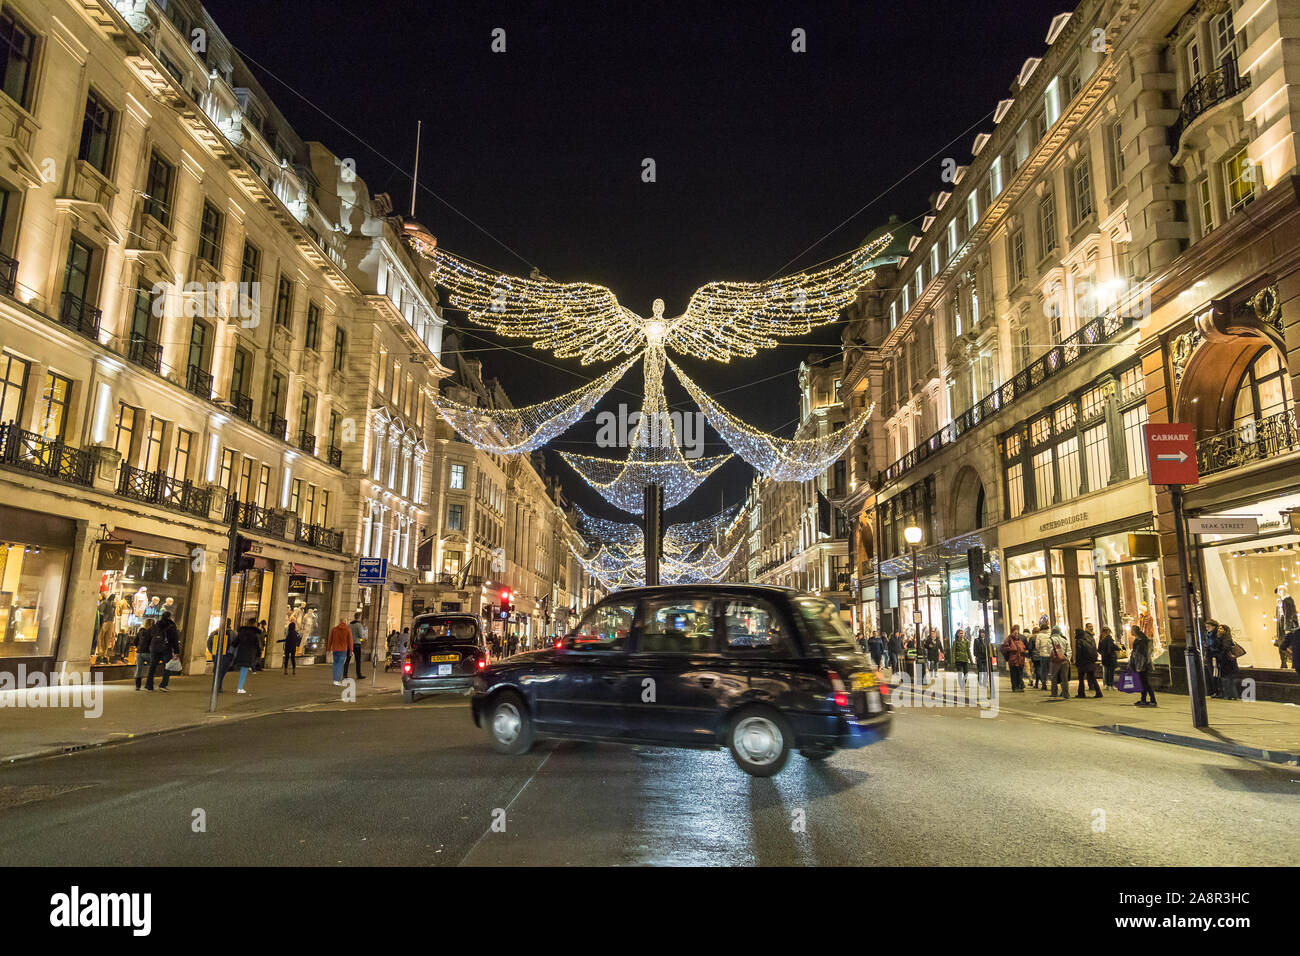 LONDON, UK - 17TH NOVEMBER 2018: Views along Regent Street at night showing Christmas decorations along the street. A typical London Black Cab can be Stock Photo